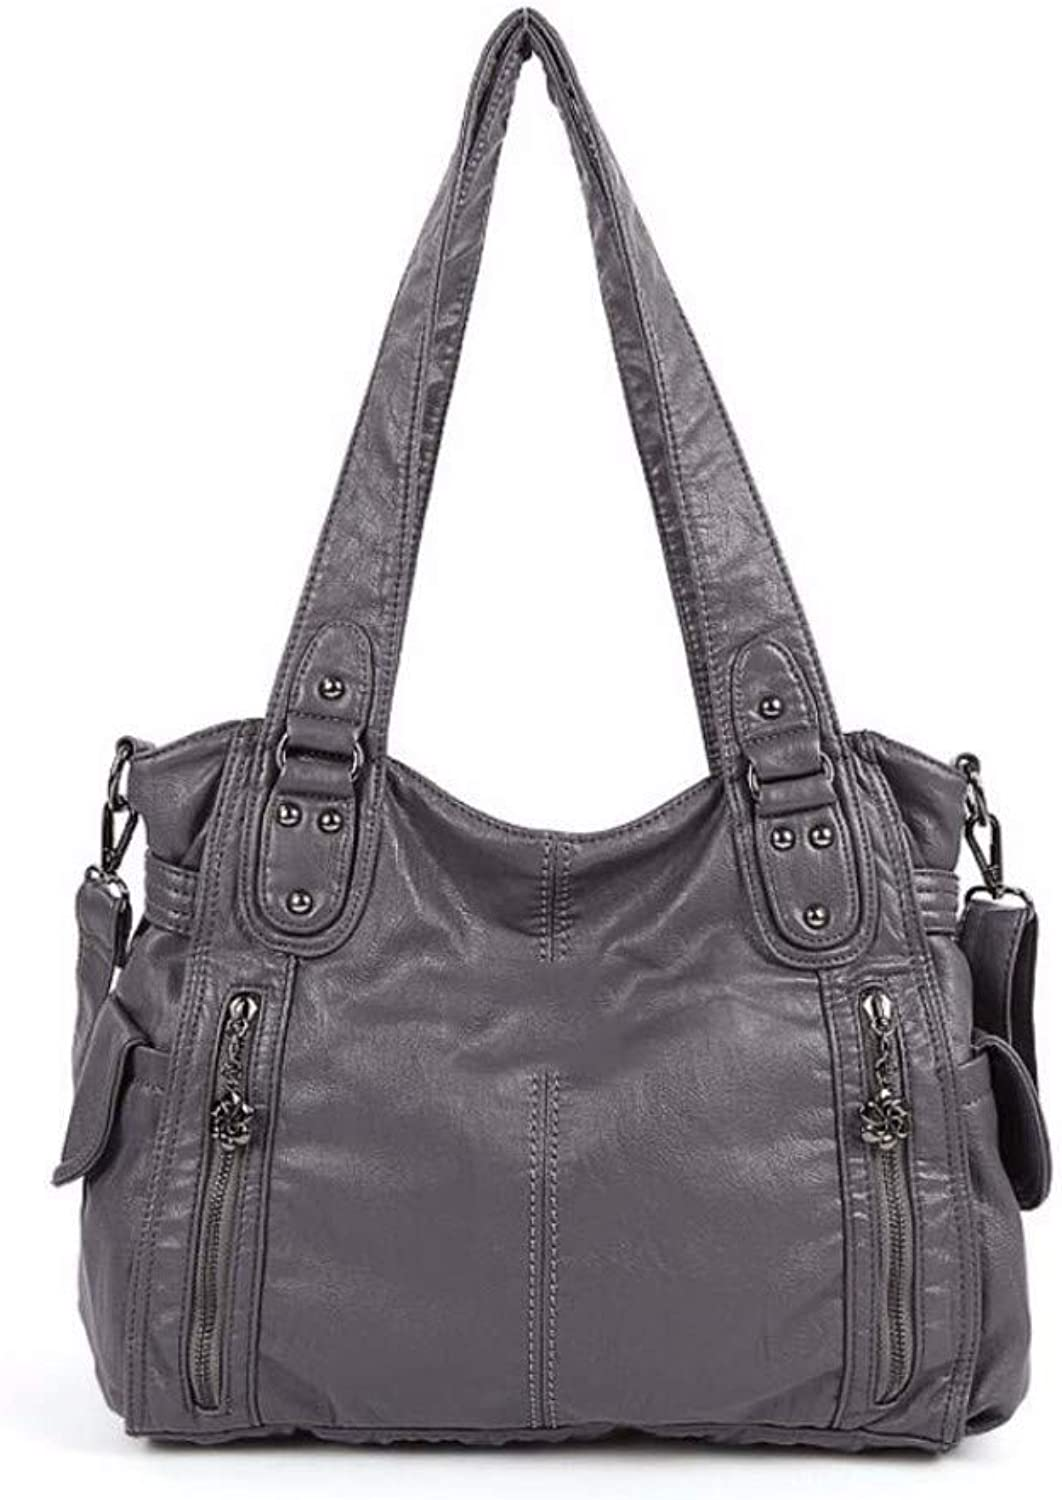 Fashion Handbag for Ladies with one Shoulder Bag Large Capacity Handbag with Inclined Span in Autumn and Winter